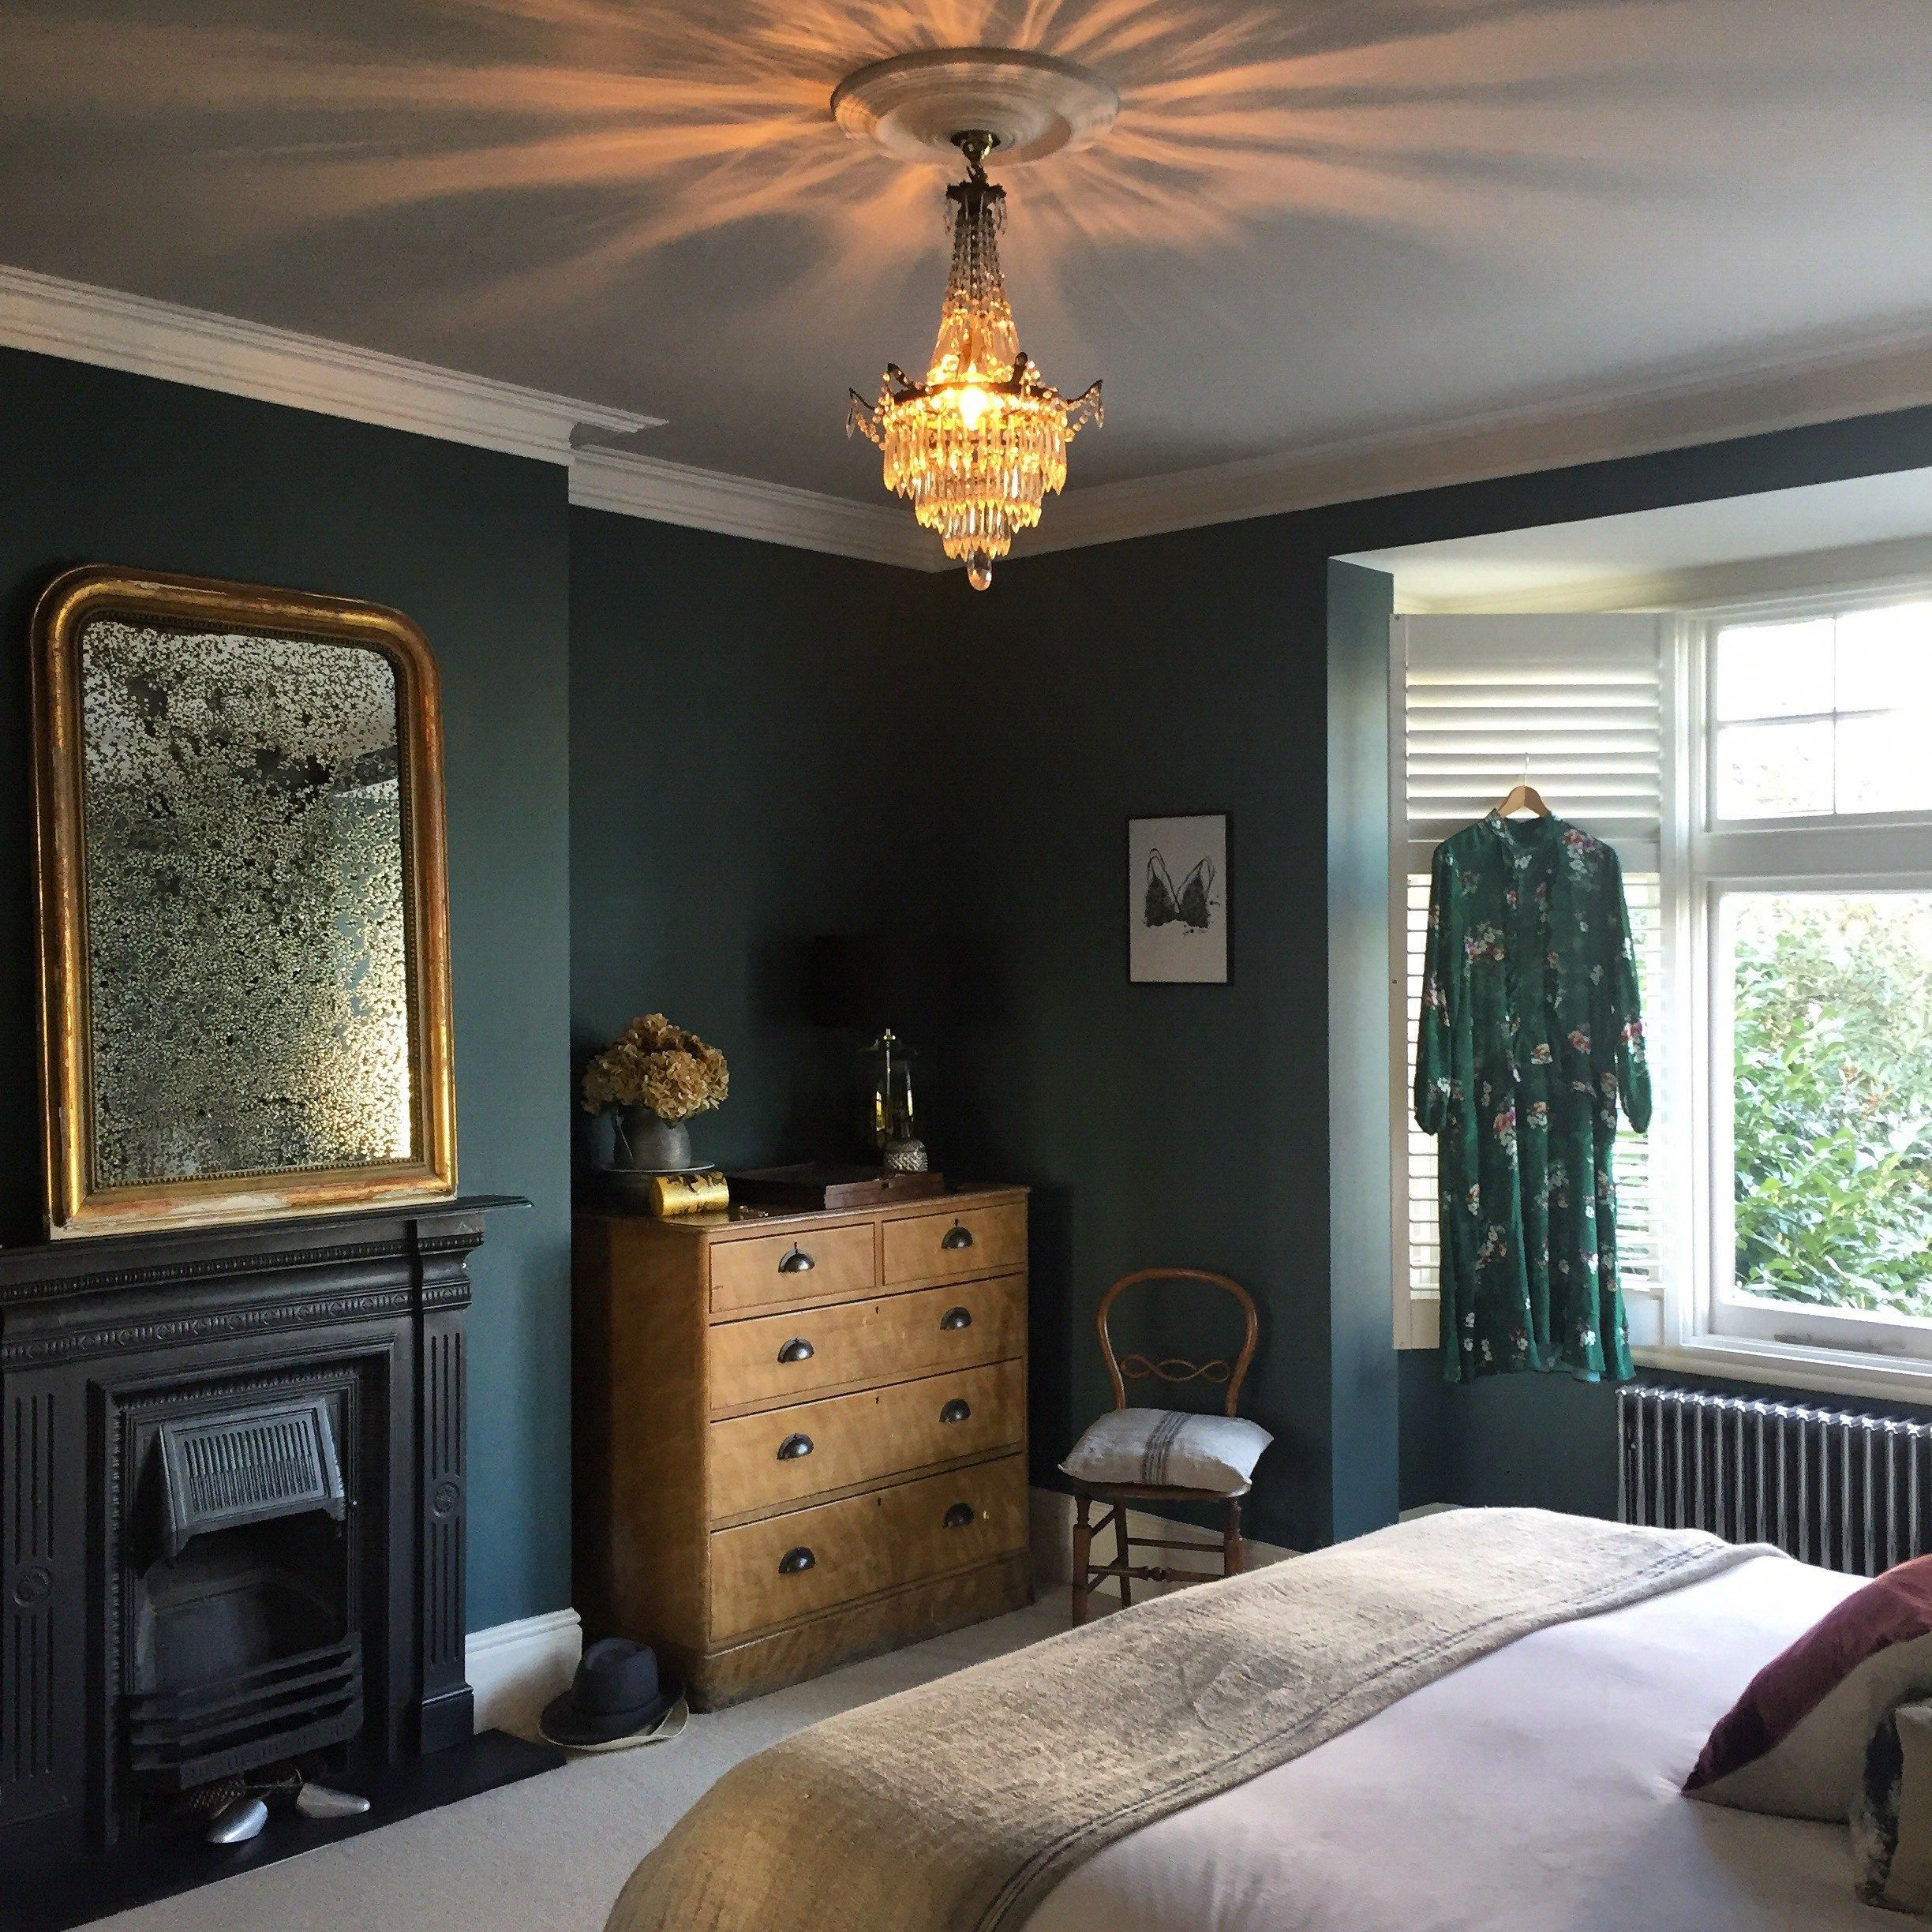 A Modern Victorian Home Tour Estelle Derouet Painted In Farrow And Balls Inchyra B Victorian House Interiors Victorian Bedroom Decor Modern Victorian Homes